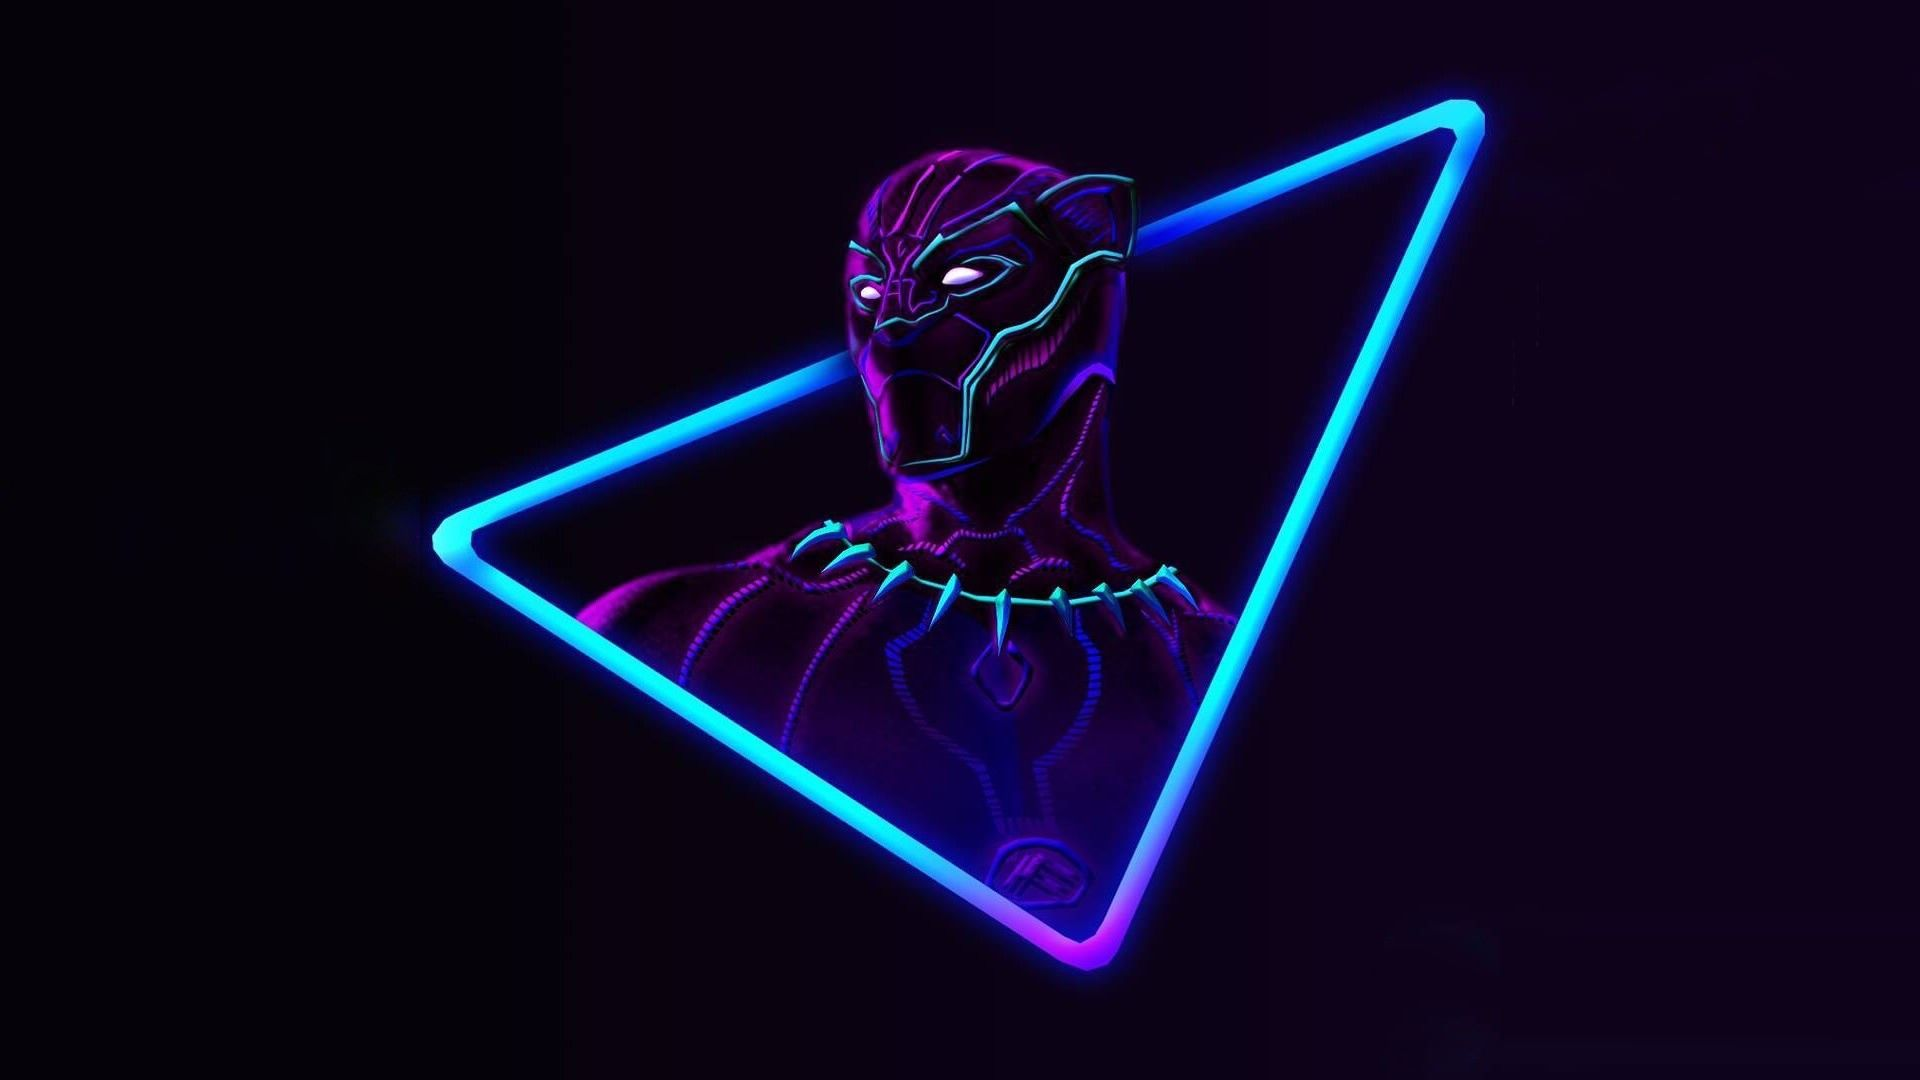 Neon Sign Aesthetic Desktop Wallpapers Top Free Neon Sign Aesthetic Desktop Backgrounds Wallpaperaccess